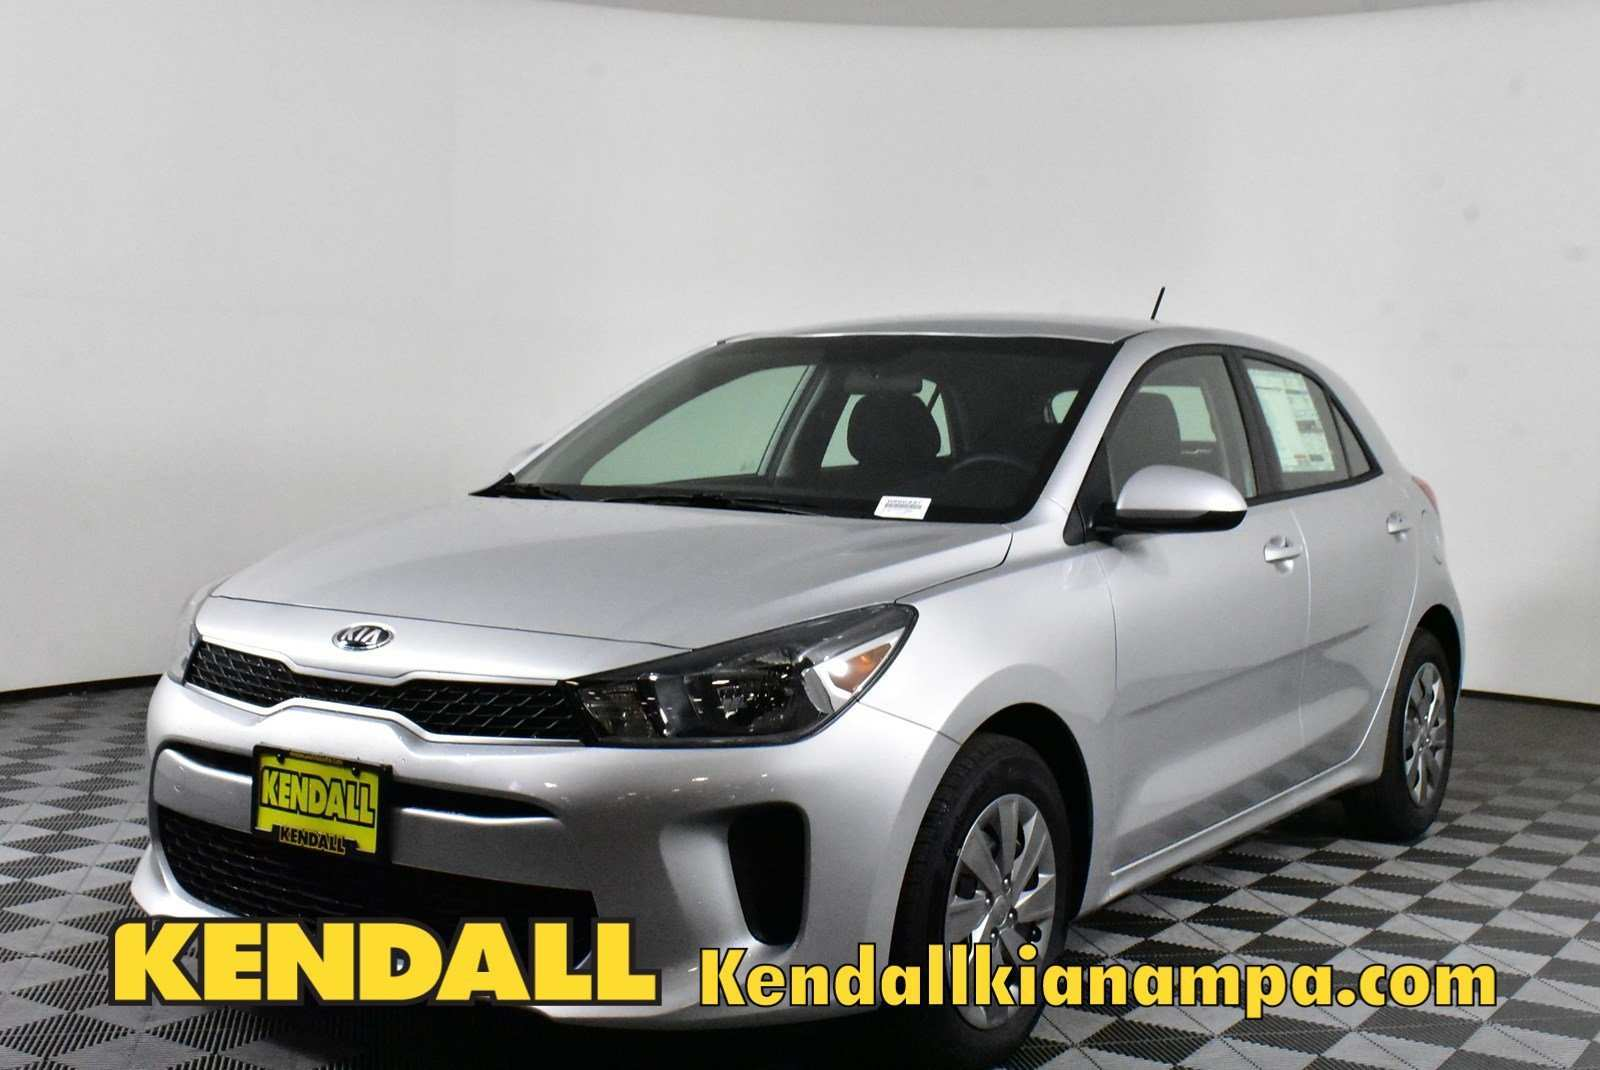 81 All New Kia Rio 2019 Review Picture